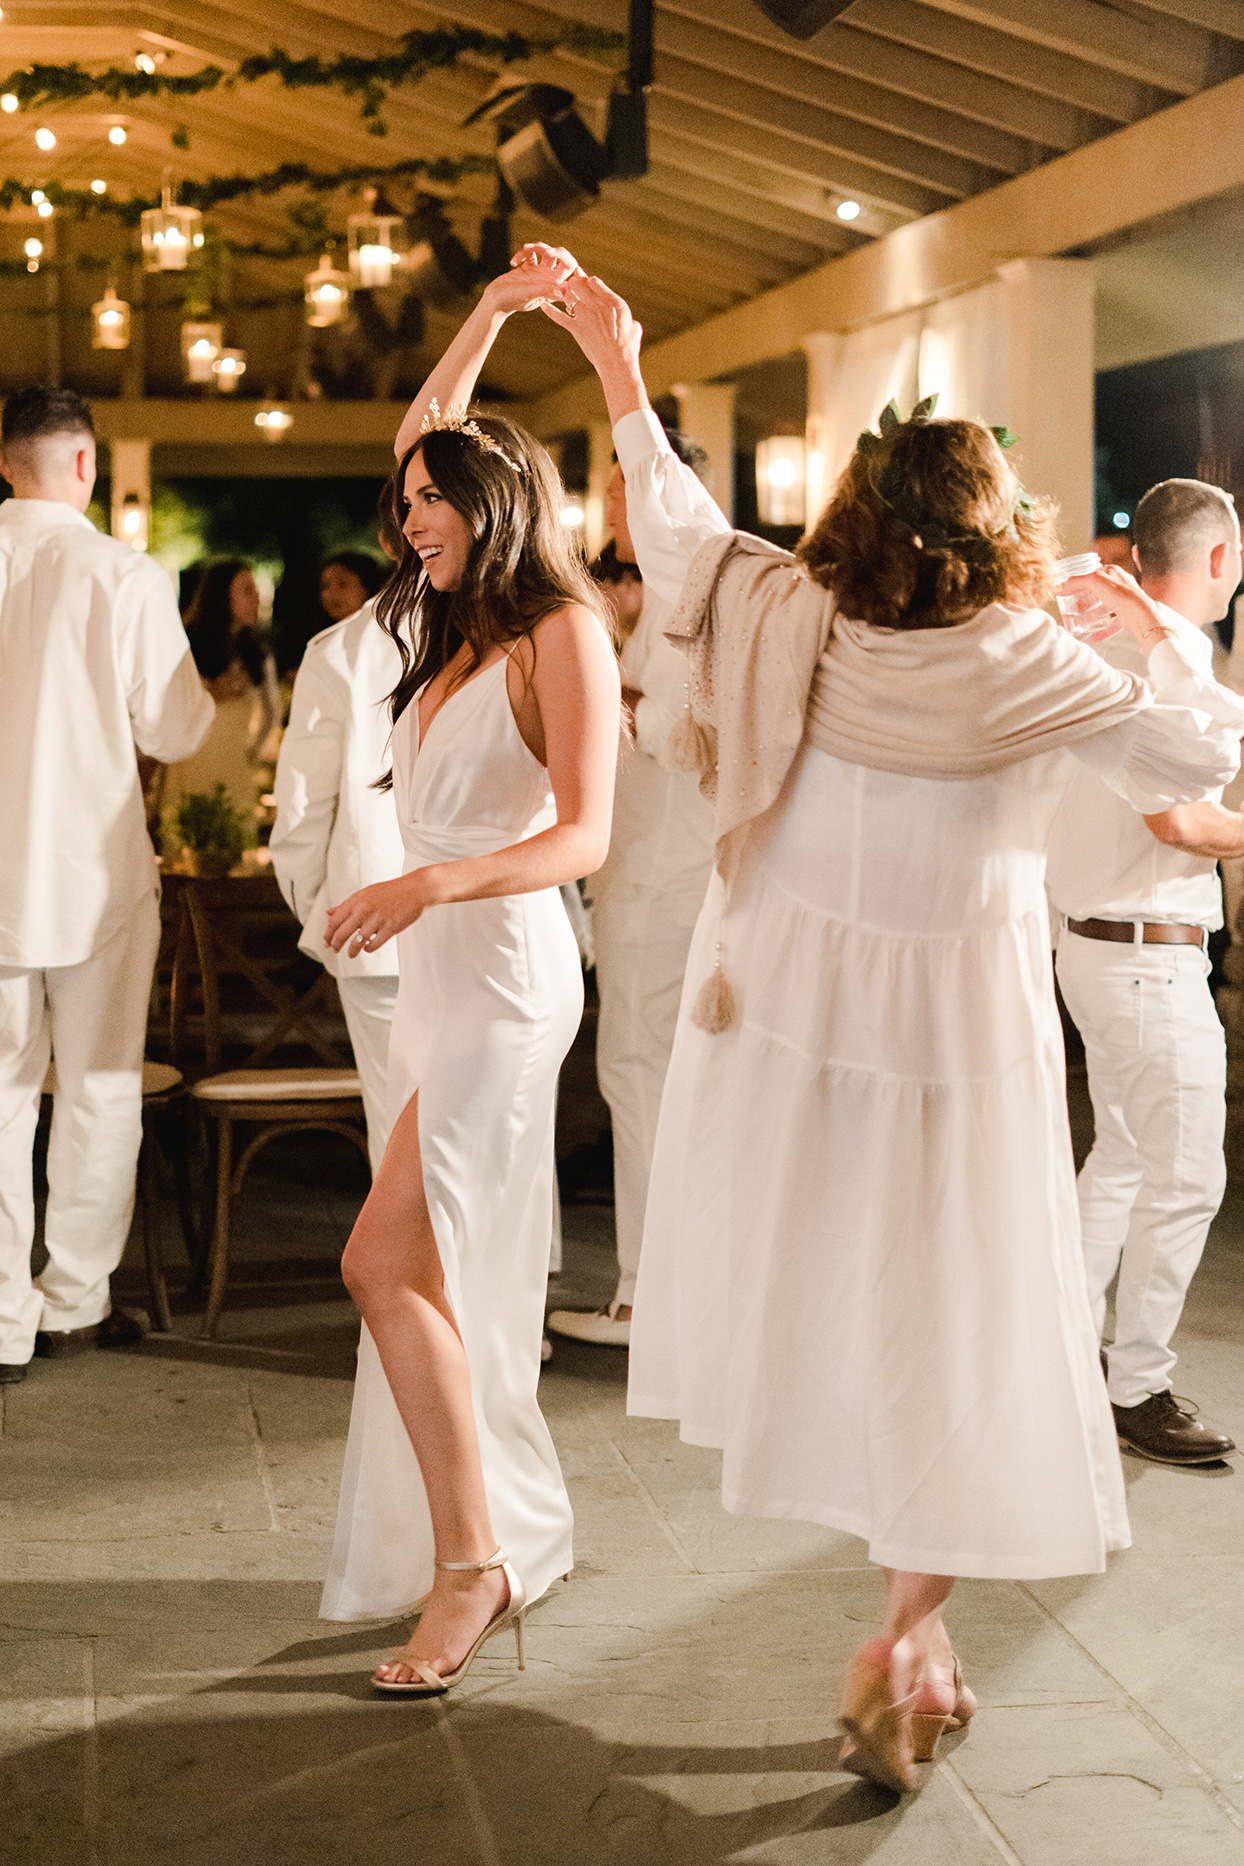 bride in white dancing at rehearsal dinner with guests